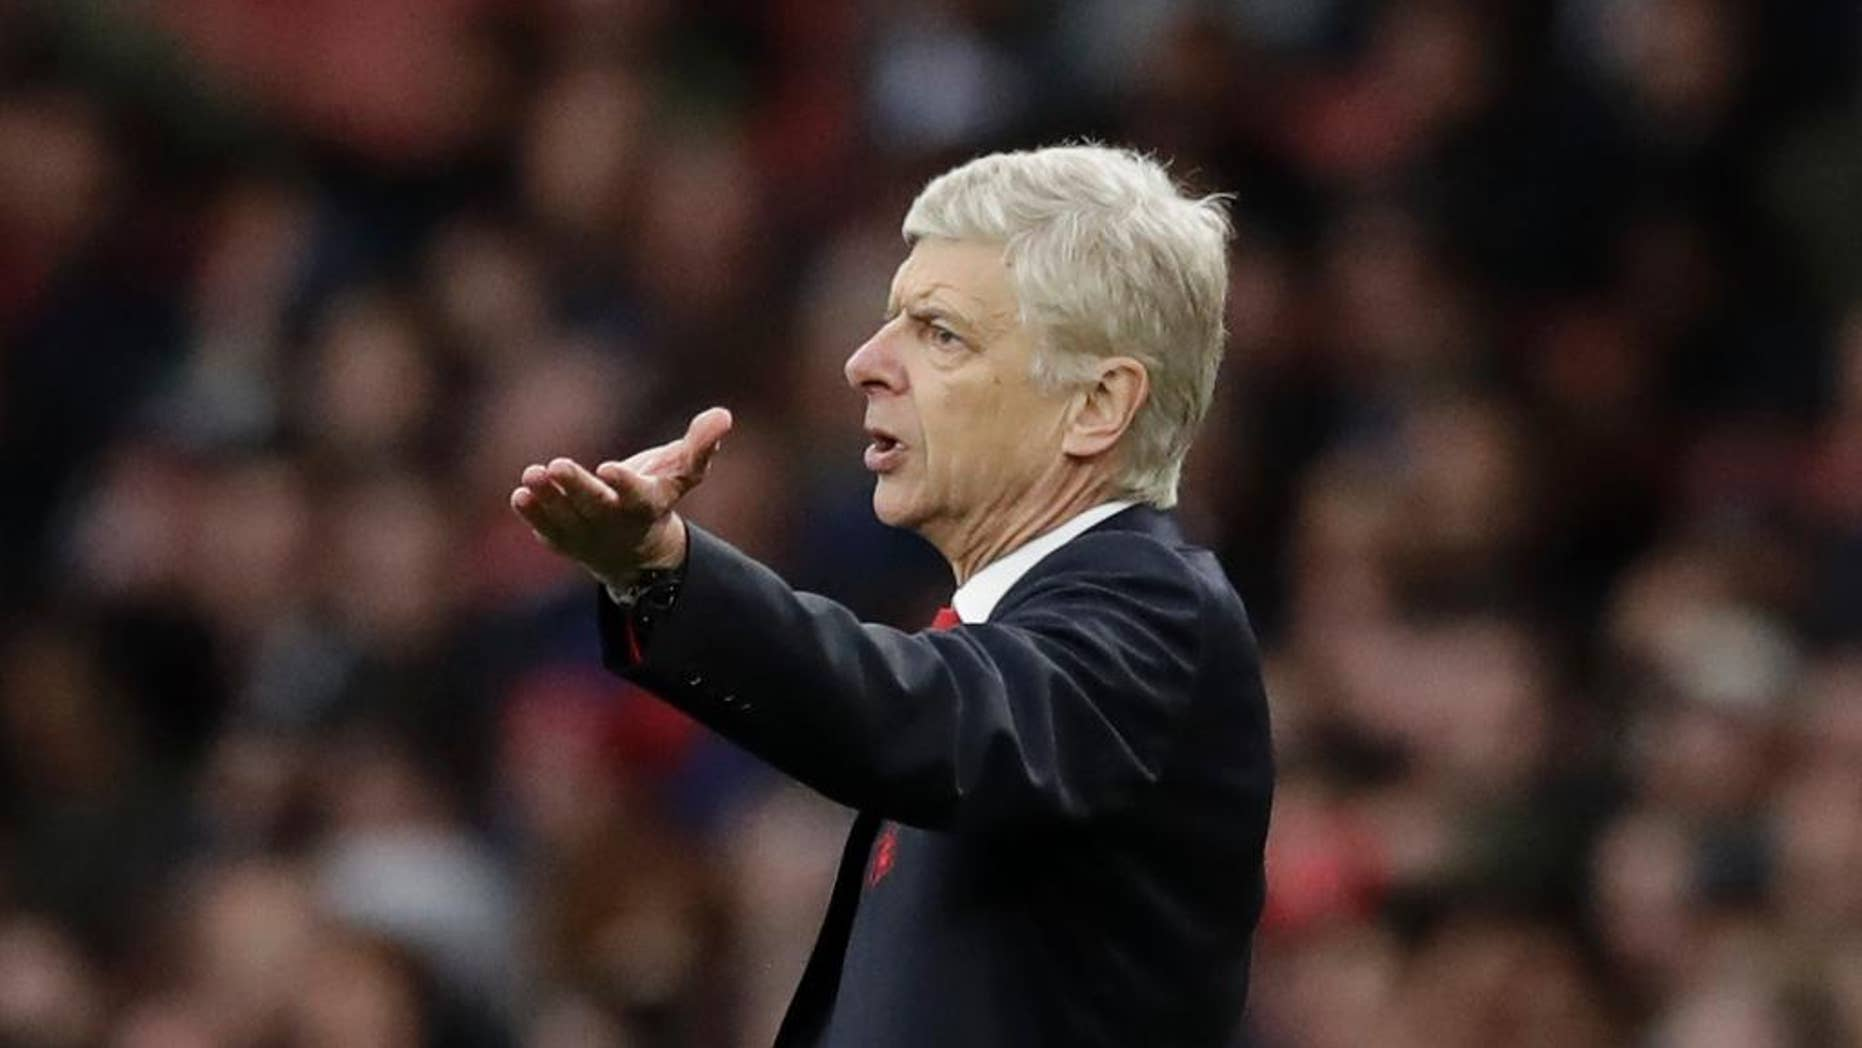 FILE  - In this Saturday, Oct. 22, 2016 file photo, Arsenal's manager Arsene Wenger gestures during the English Premier League soccer match between Arsenal and Middlesbrough at the Emirates Stadium in London. The English Football Association has banned Arsenal manager Arsene Wenger from the touchline for four matches after an altercation with a match official. Wenger escaped a stadium ban for shoving fourth official Anthony Taylor in the tunnel area at Emirates Stadium on Sunday, Jan. 22, 2017 during Arsenal's 2-1 victory over Burnley in the Premier League. (AP Photo/Matt Dunham)